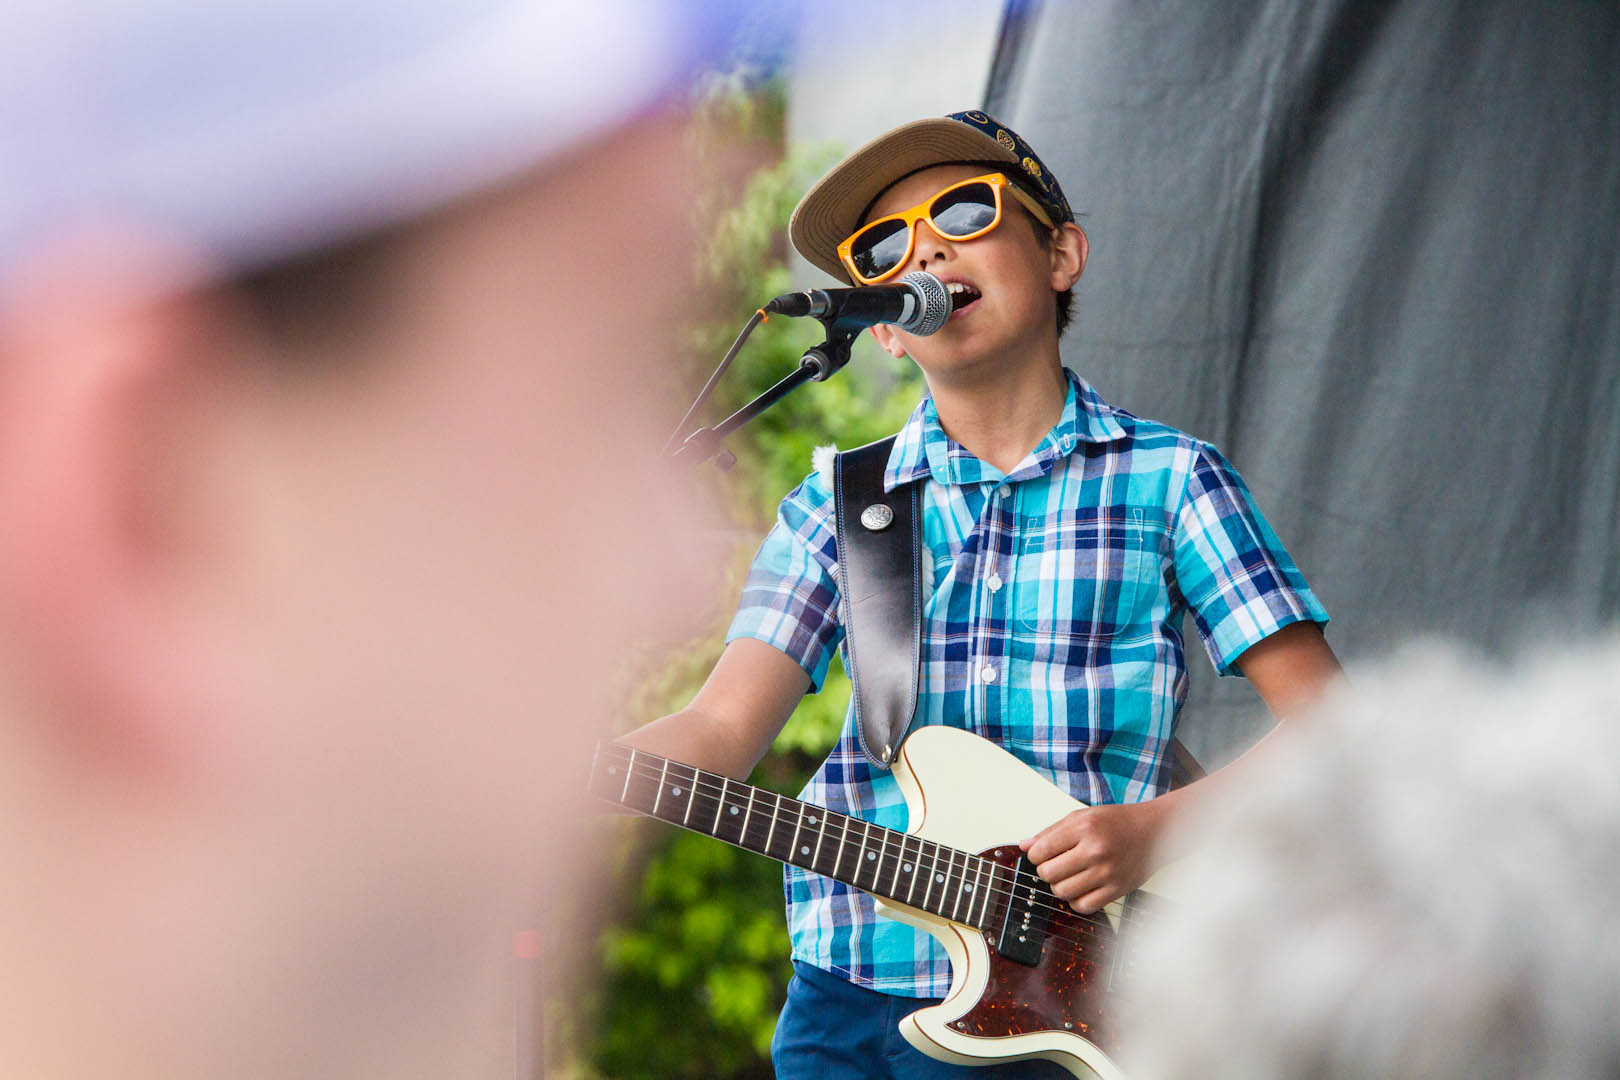 The Dylan Miles Experience steals the show at the Highlands Street Fair